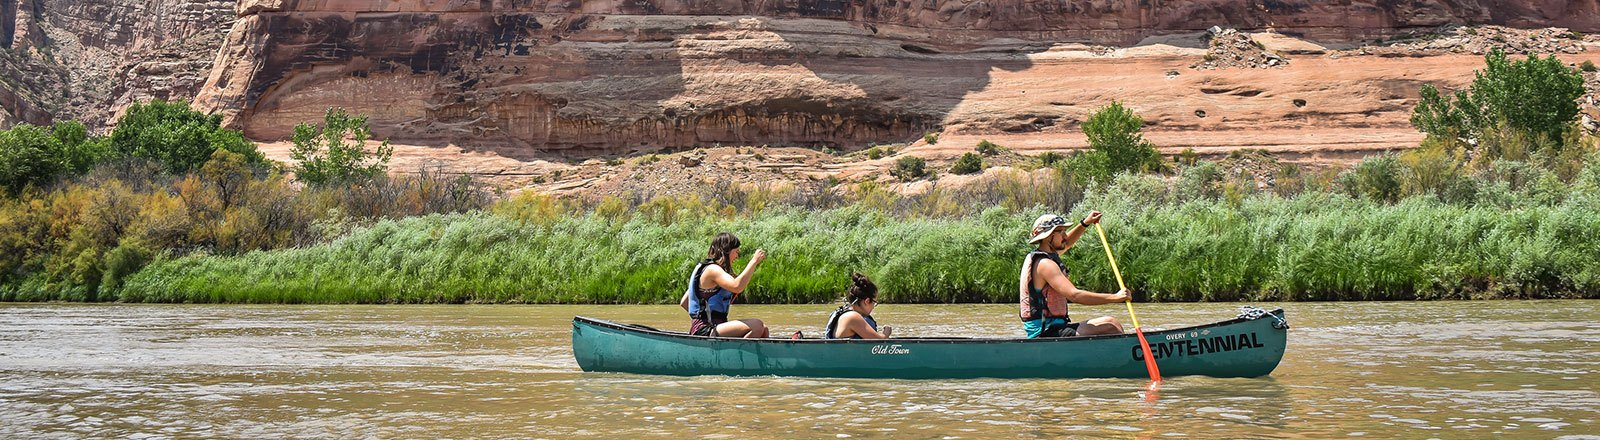 Geography students in canoe at the Colorado River